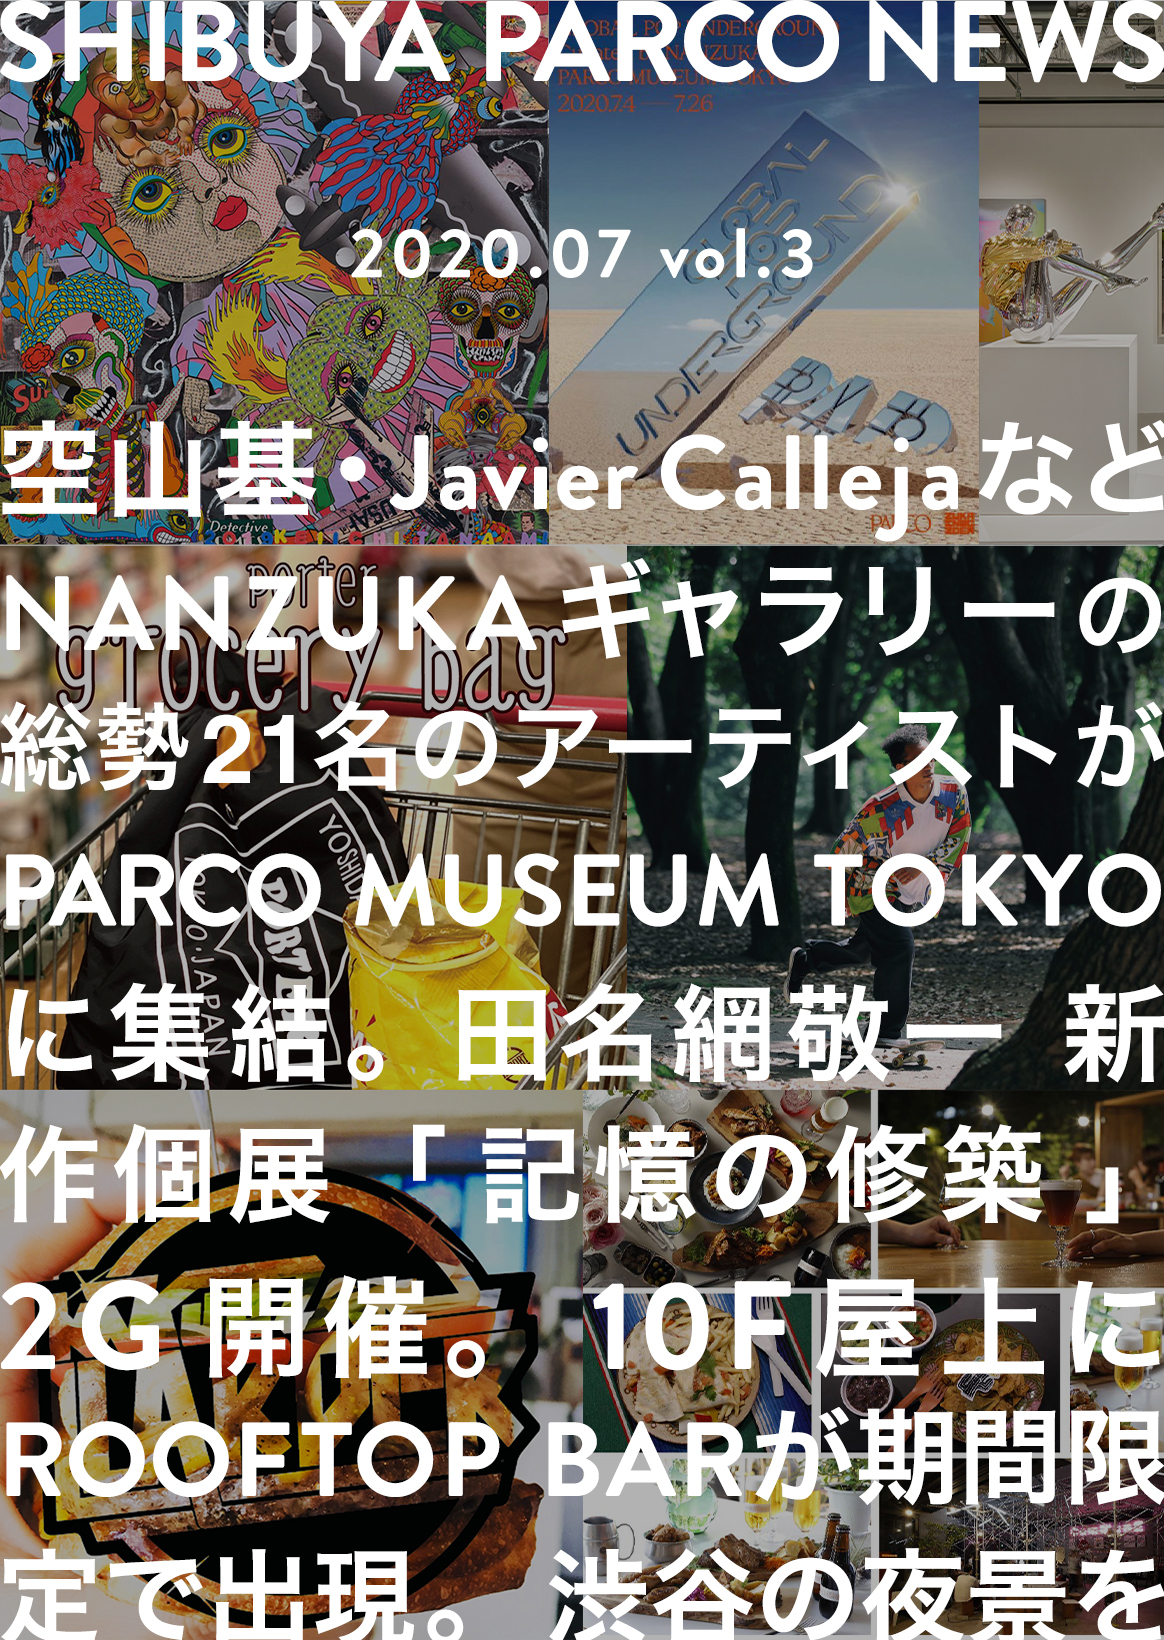 SHIBUYA PARCO NEWS-2020.7-vol.3